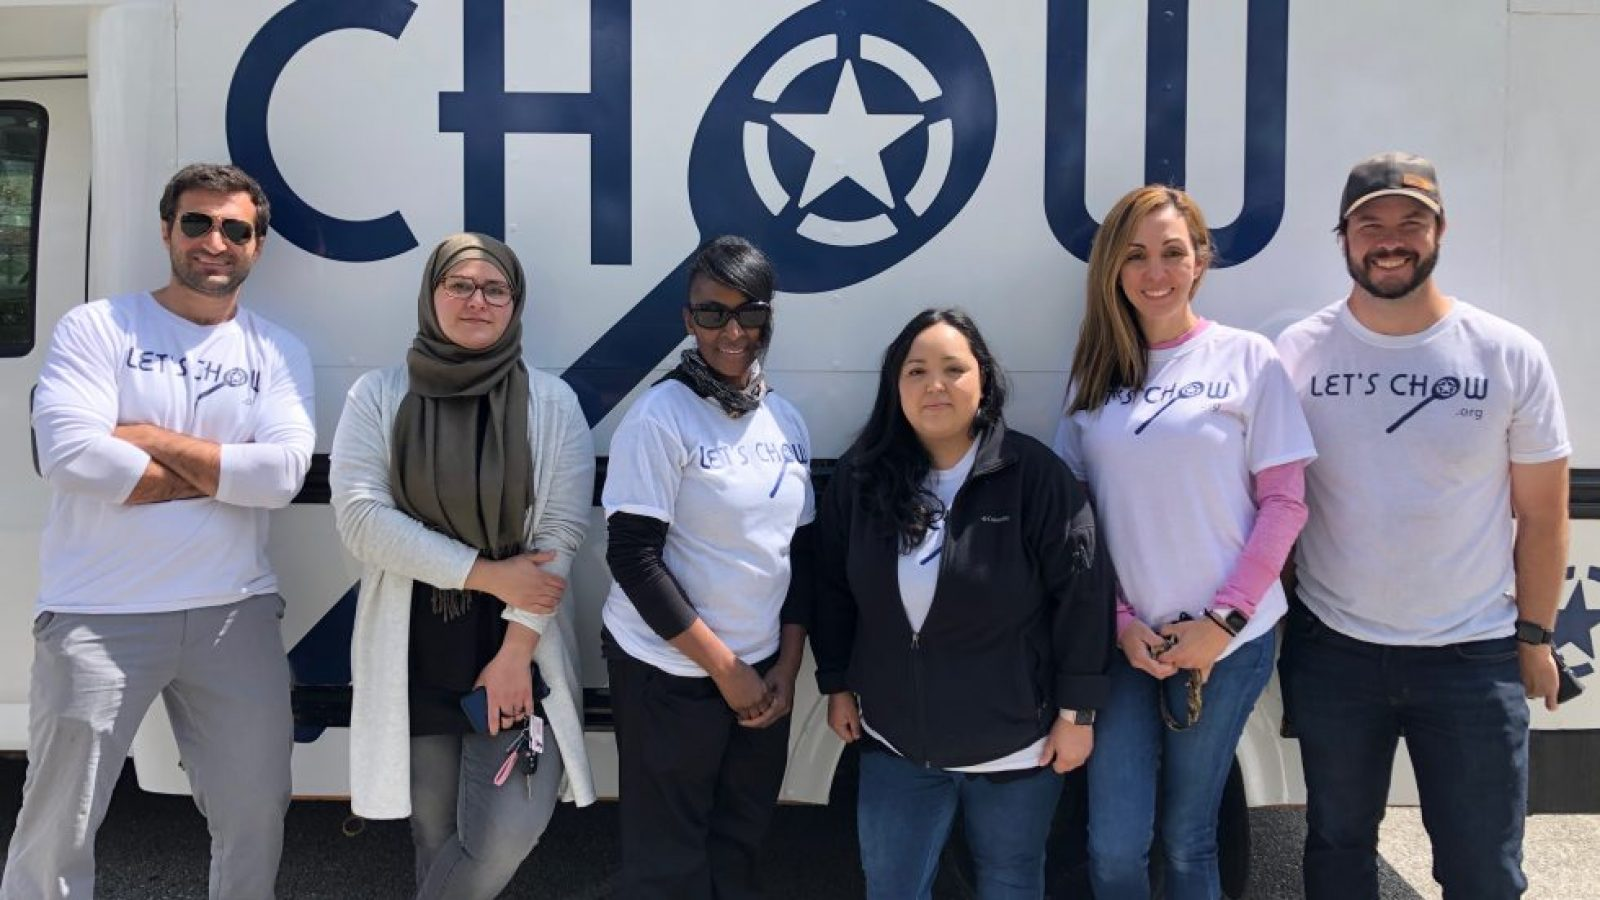 Jordan Foley and five Chow fellows stand in front of a food truck